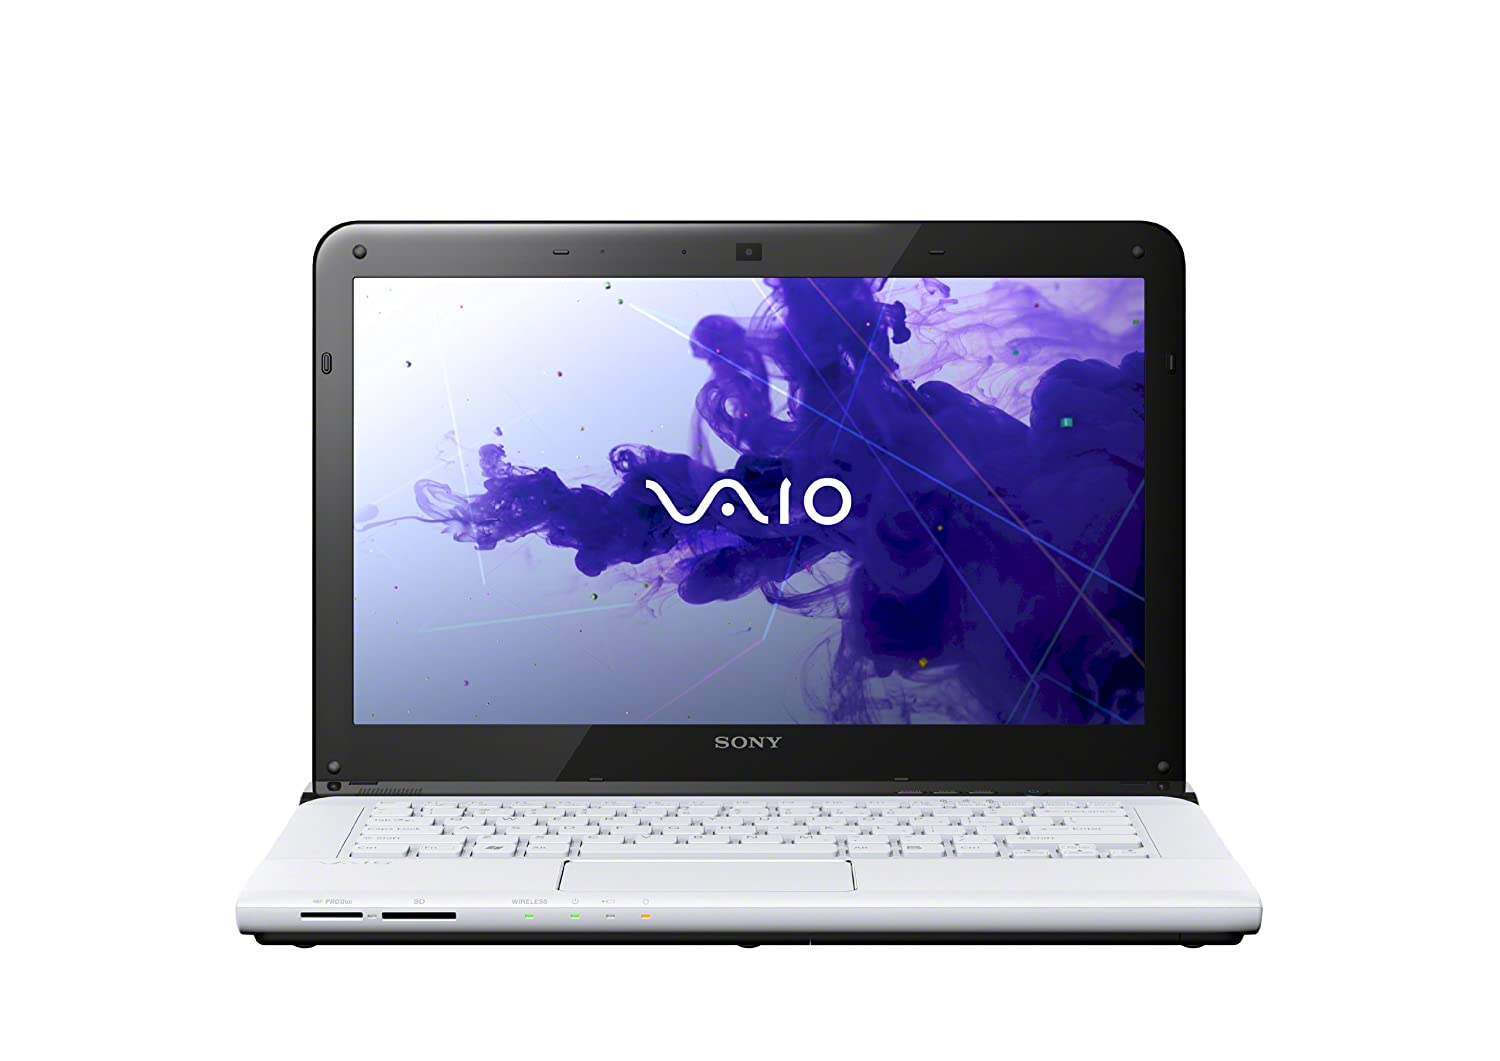 sony vaio laptop. amazon.com: sony vaio e series sve14135cxw 14-inch laptop (white): computers \u0026 accessories vaio